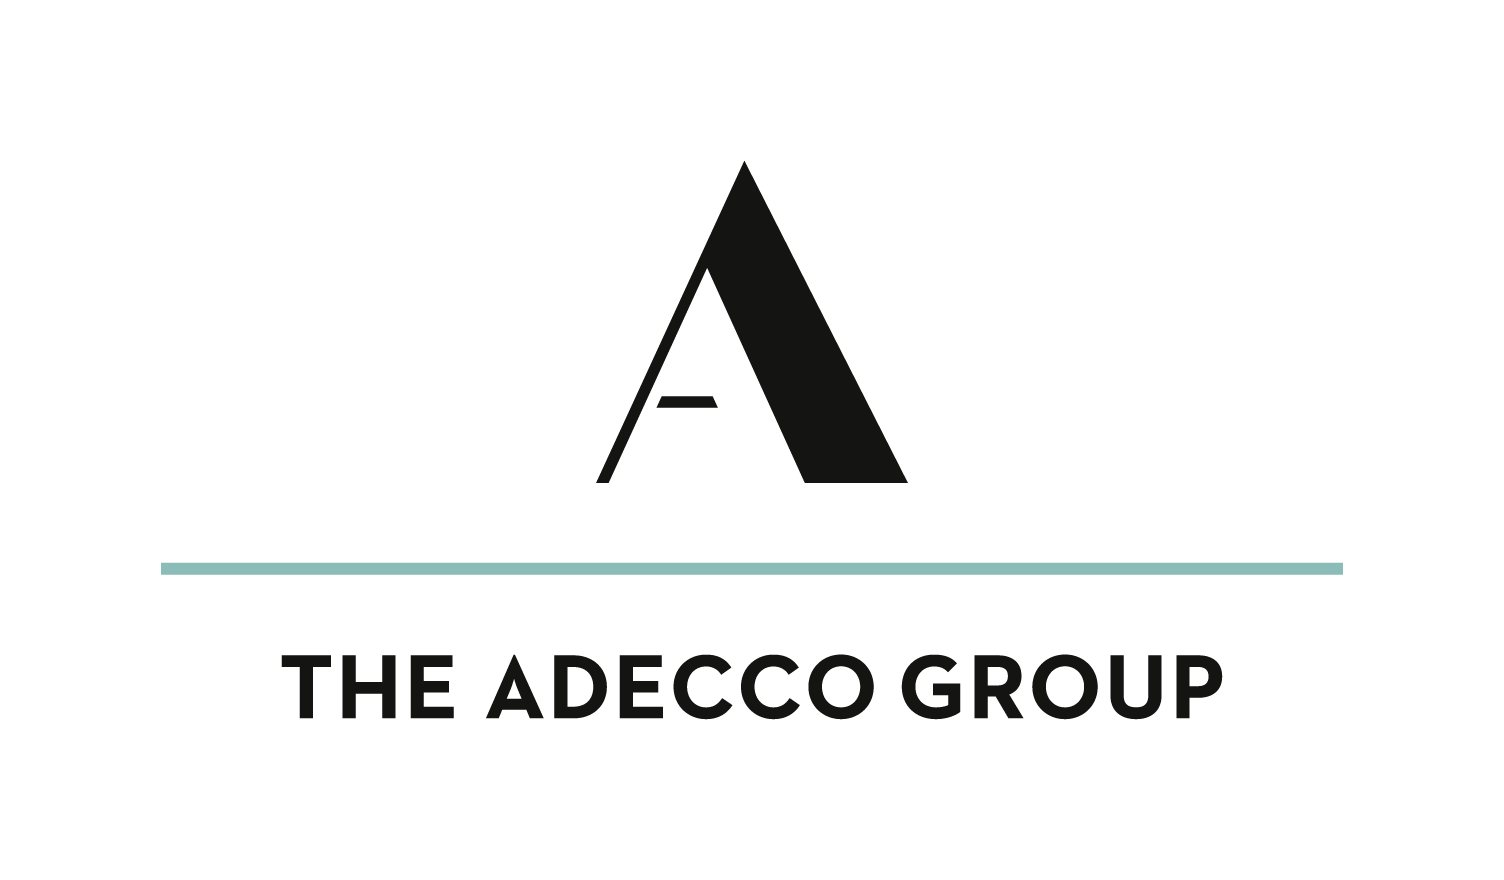 The Adecco Group Switzerland